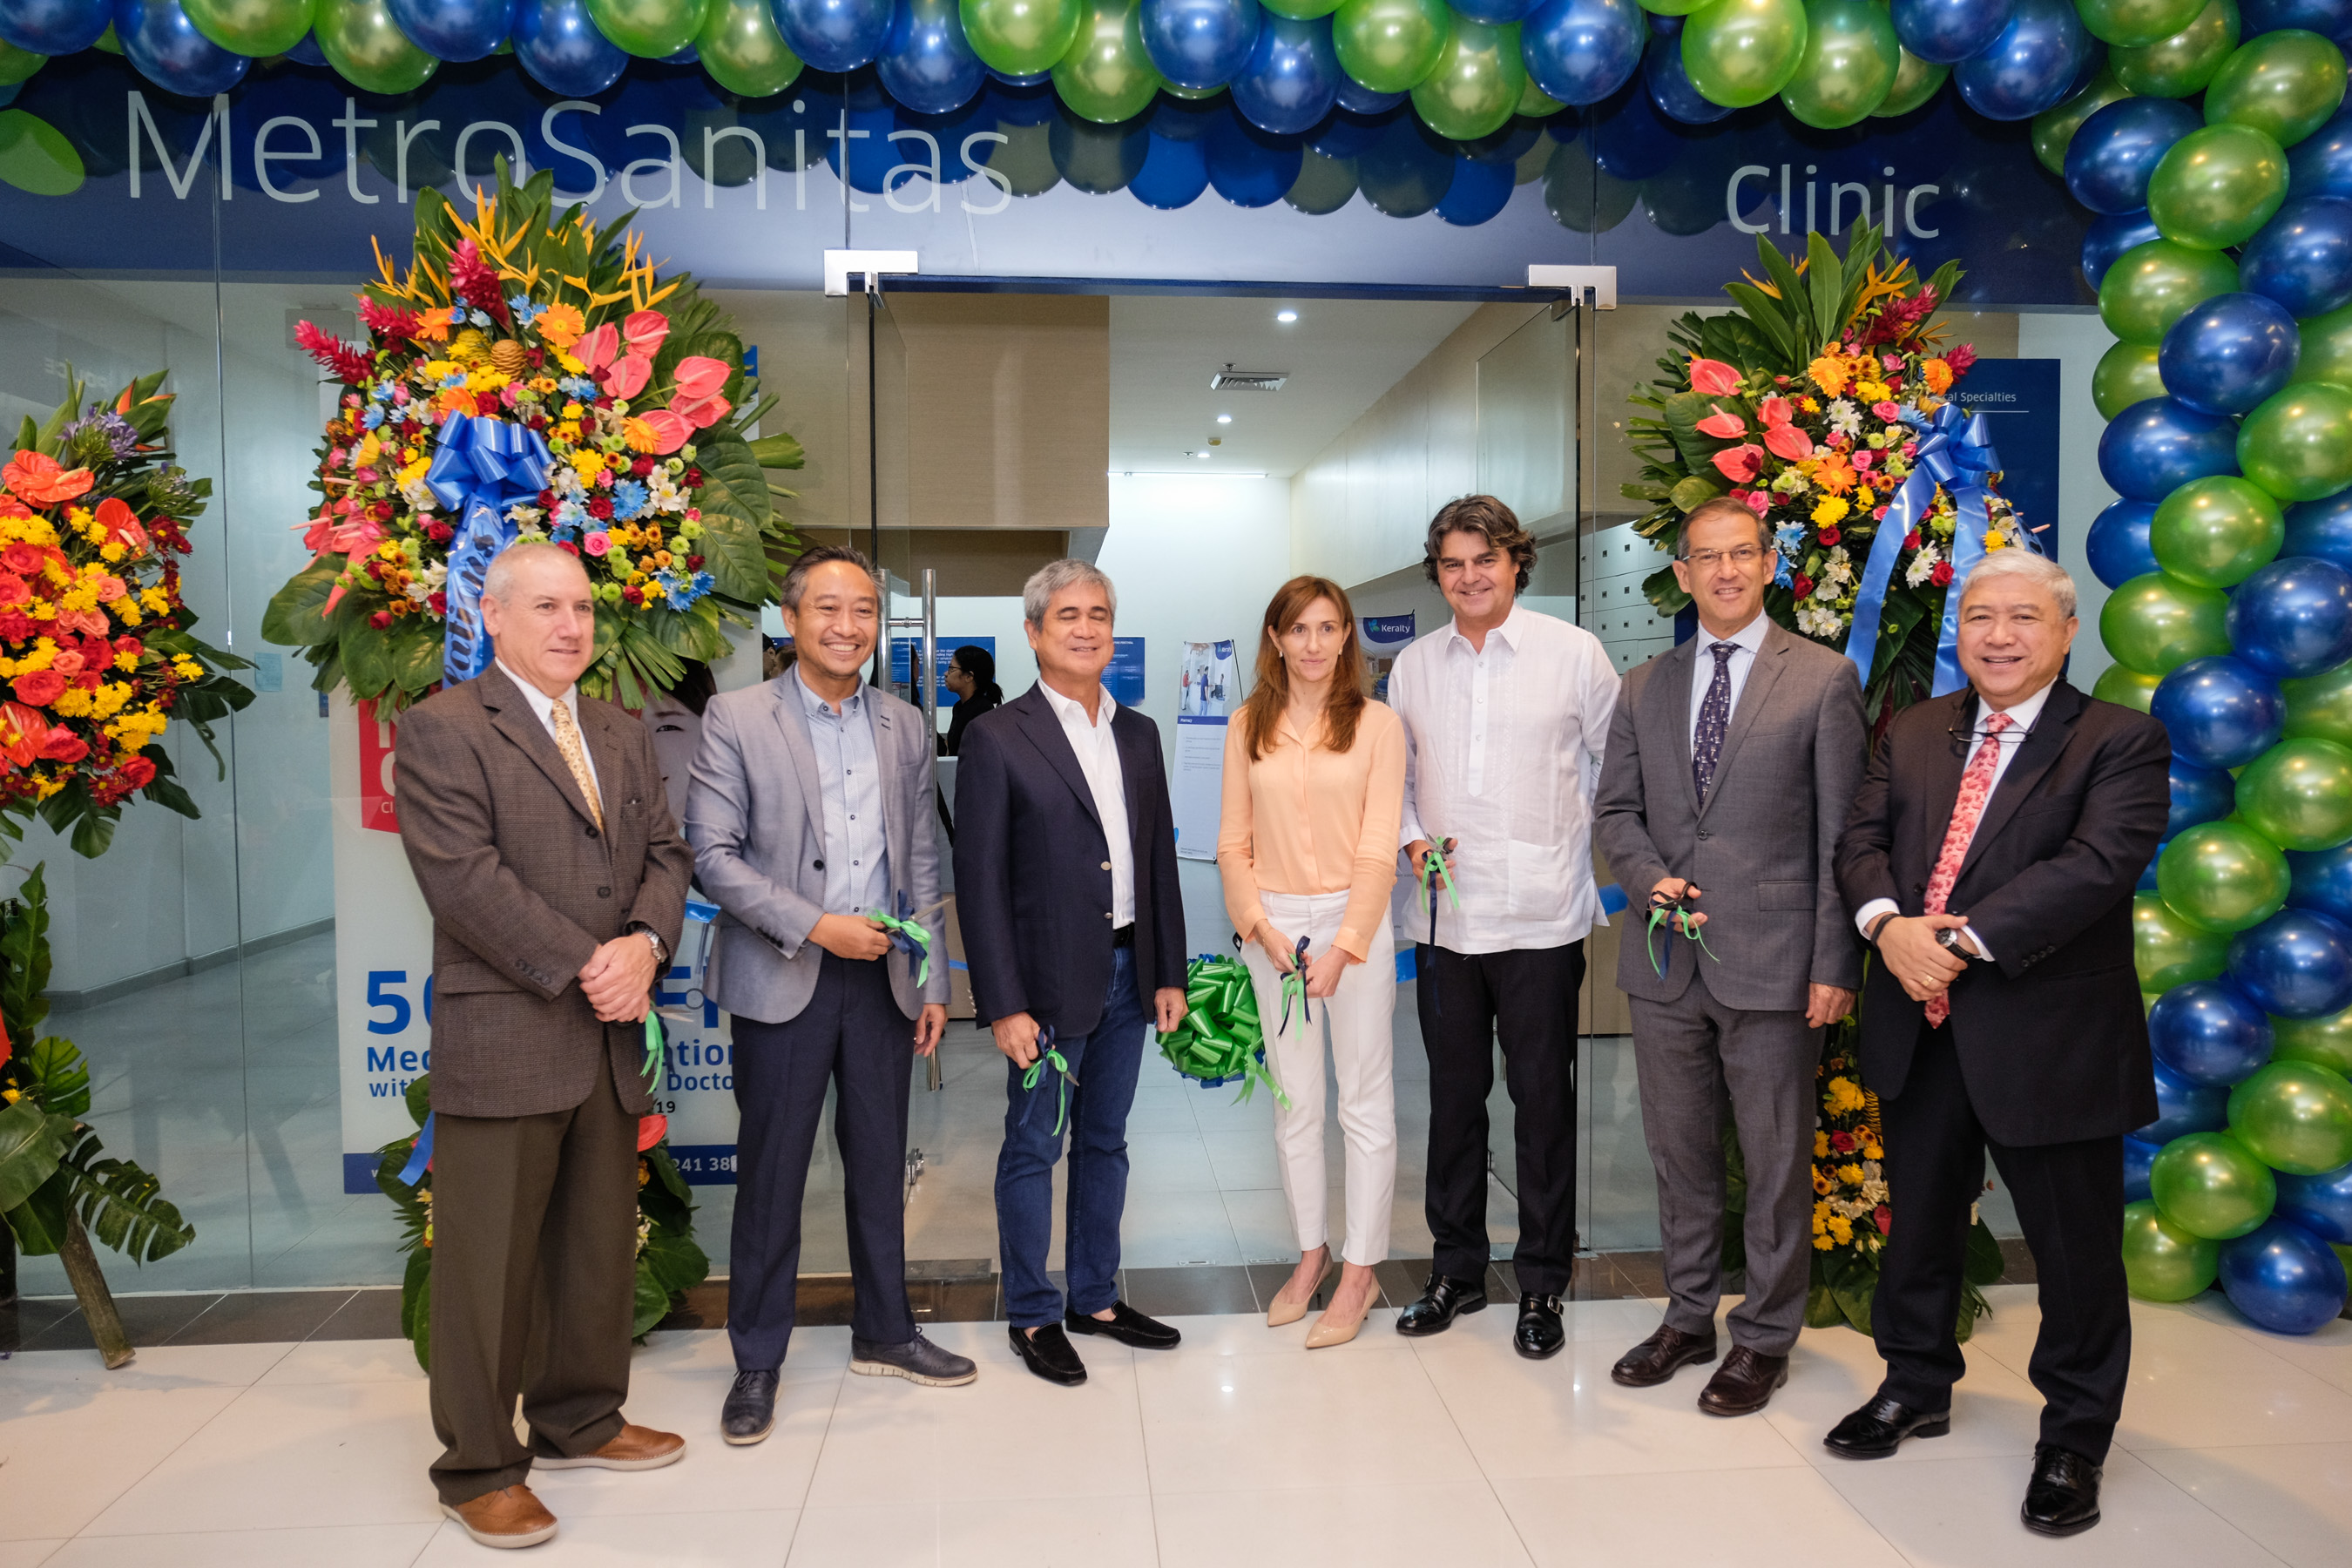 Metro Sanitas Corporation opens its one-stop clinic in Festival Mall